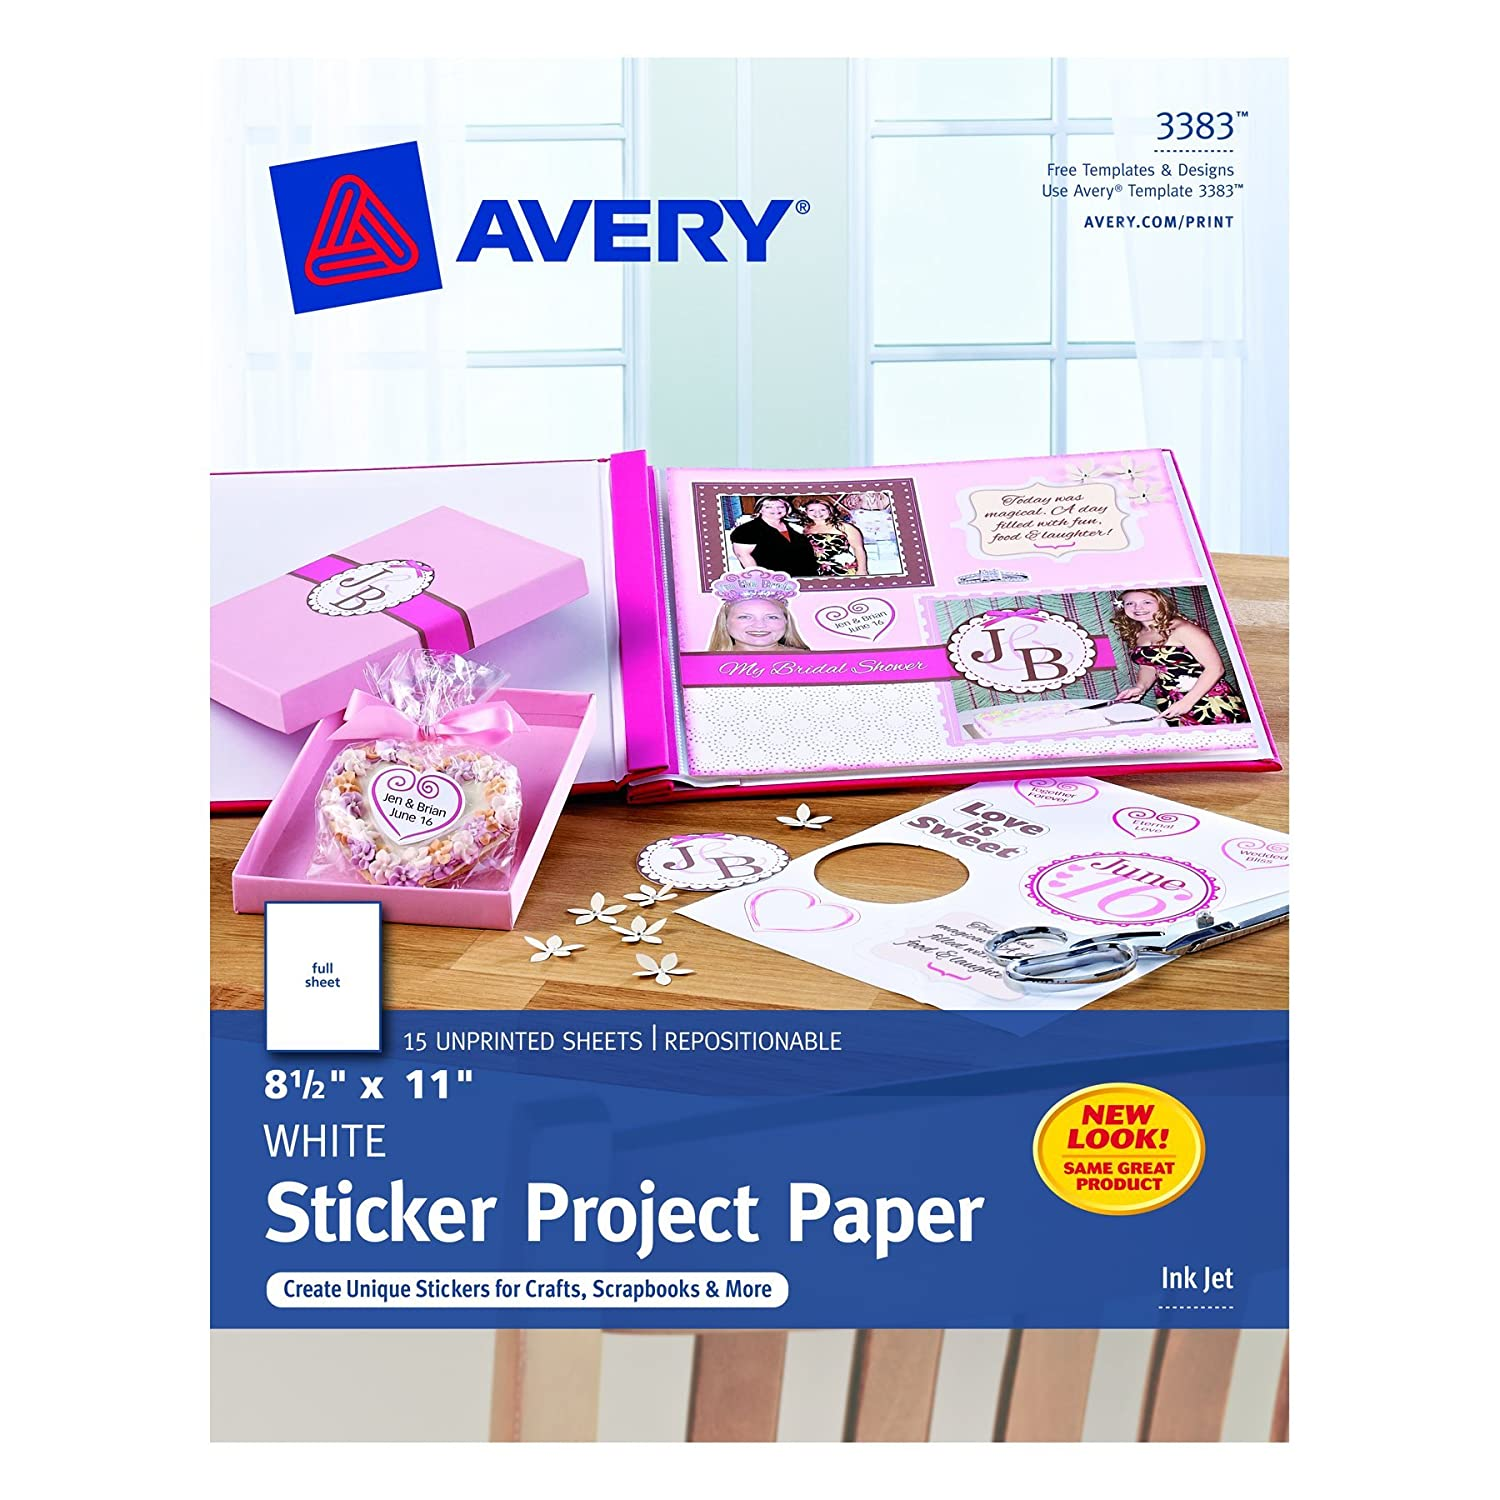 Avery Sticker Project Paper